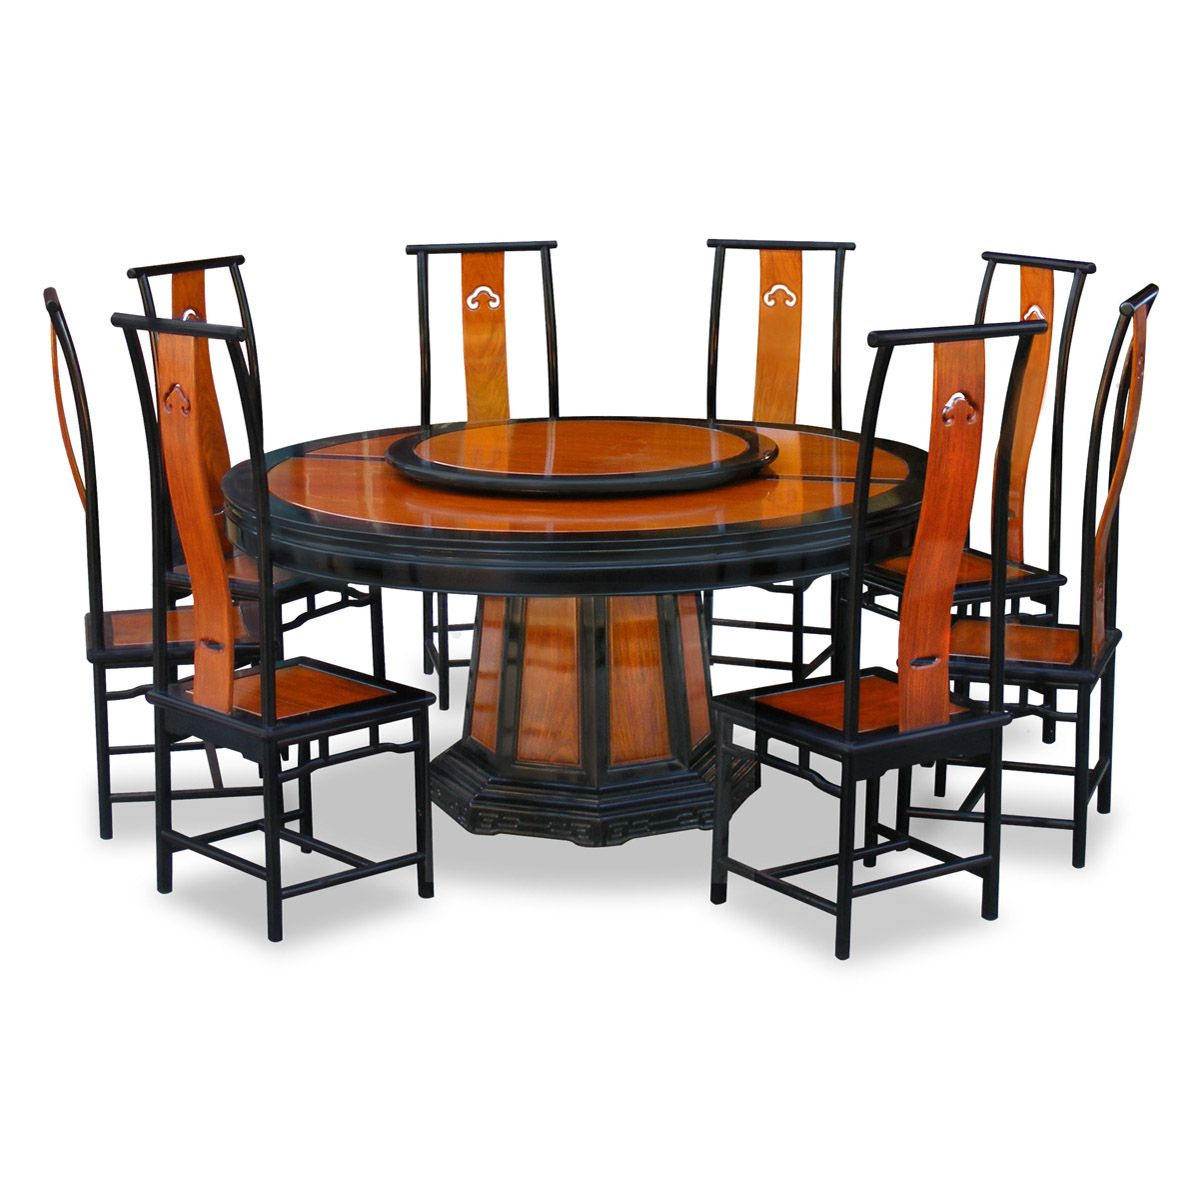 Oriental Dining Table: Black Trim Natural Finish Rosewood Ming Round Dining Set